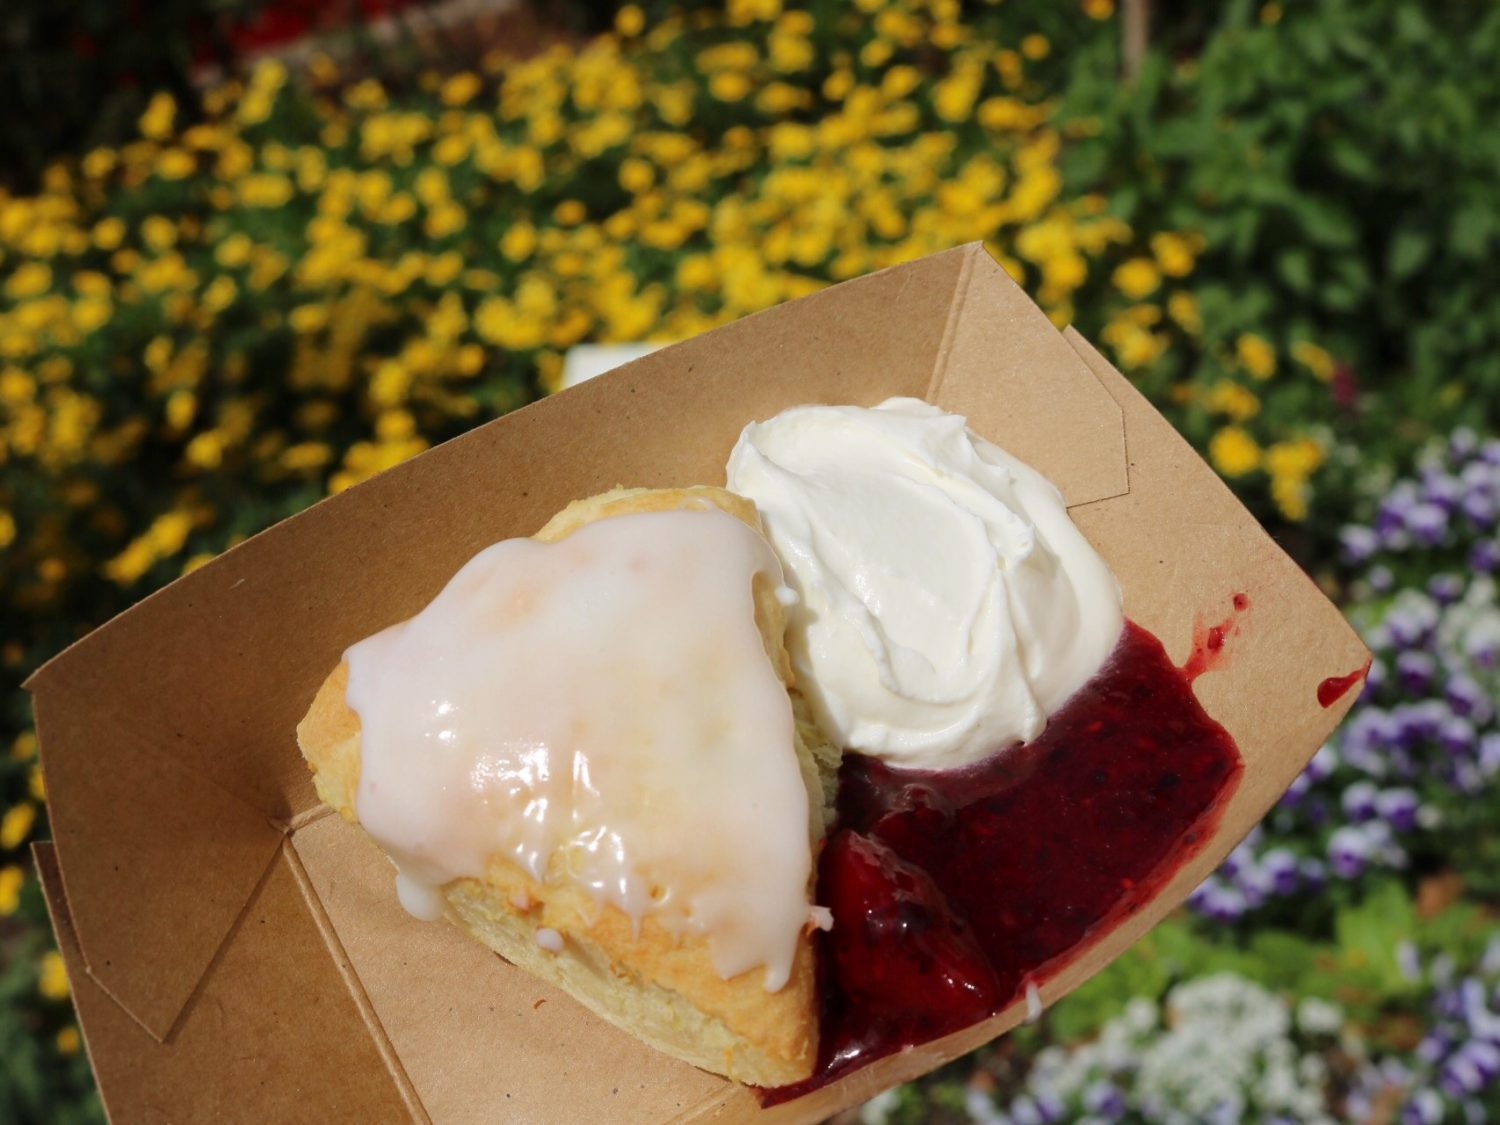 Epcot International Flower and Garden Festival Freshly Baked Lemon Scone with Crème Fraîche and Mixed Berries